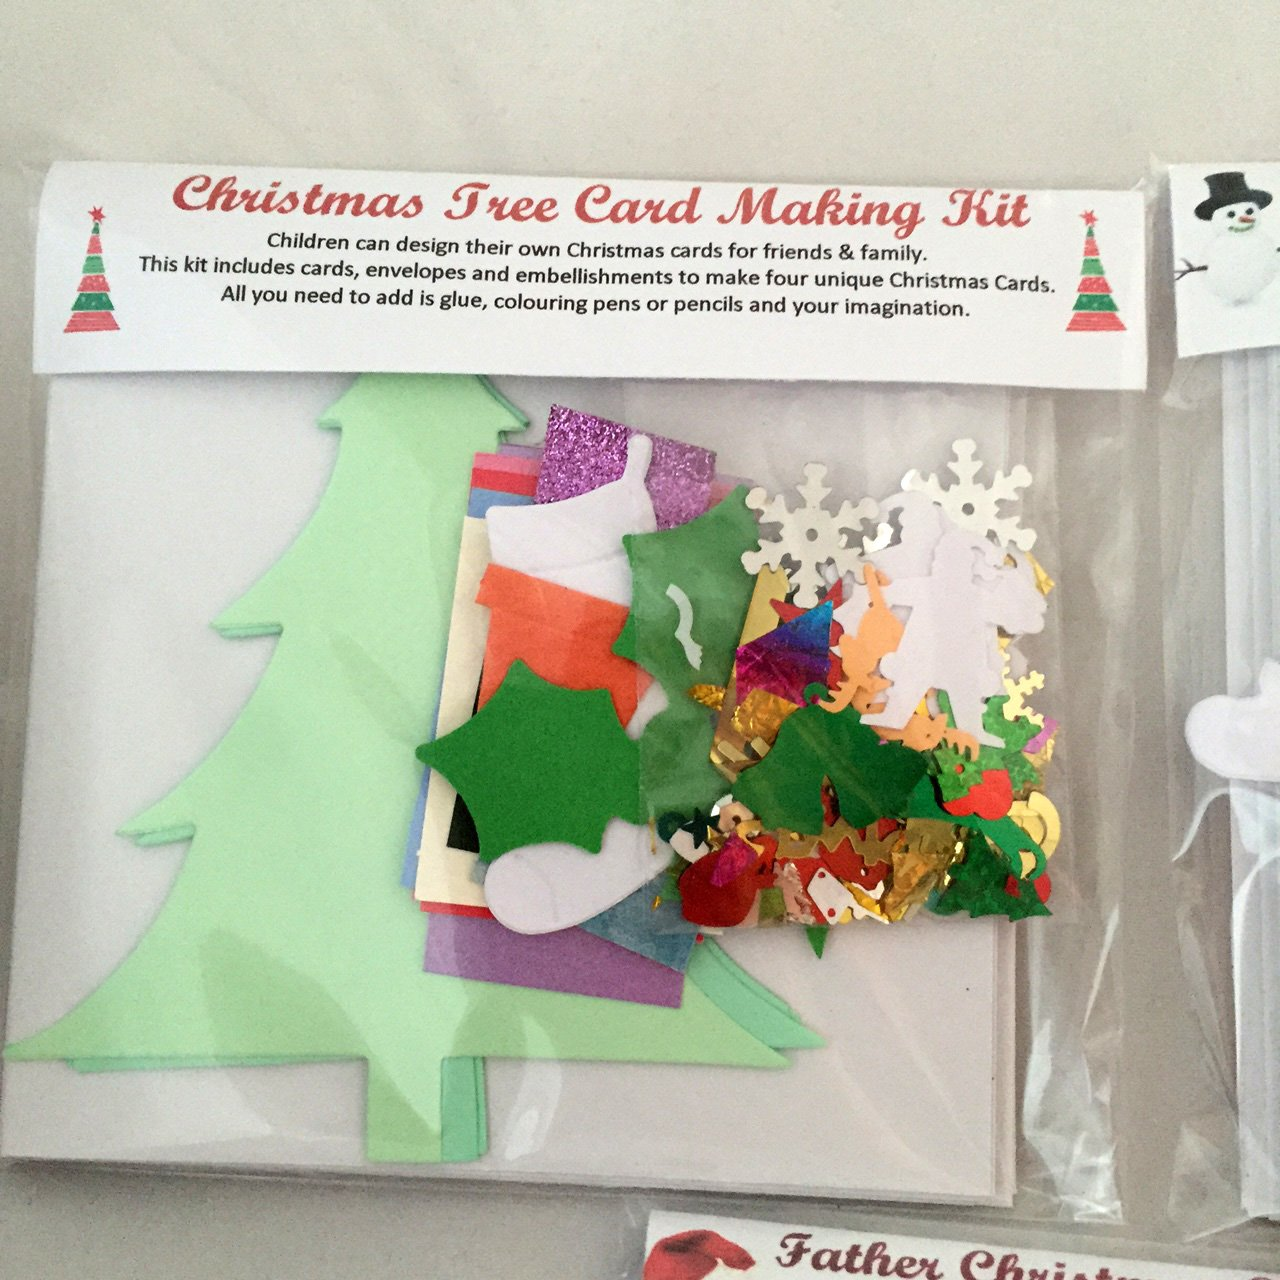 Christmas Tree Card Kit - Makes 4 cards, includes cards & envelopes ...